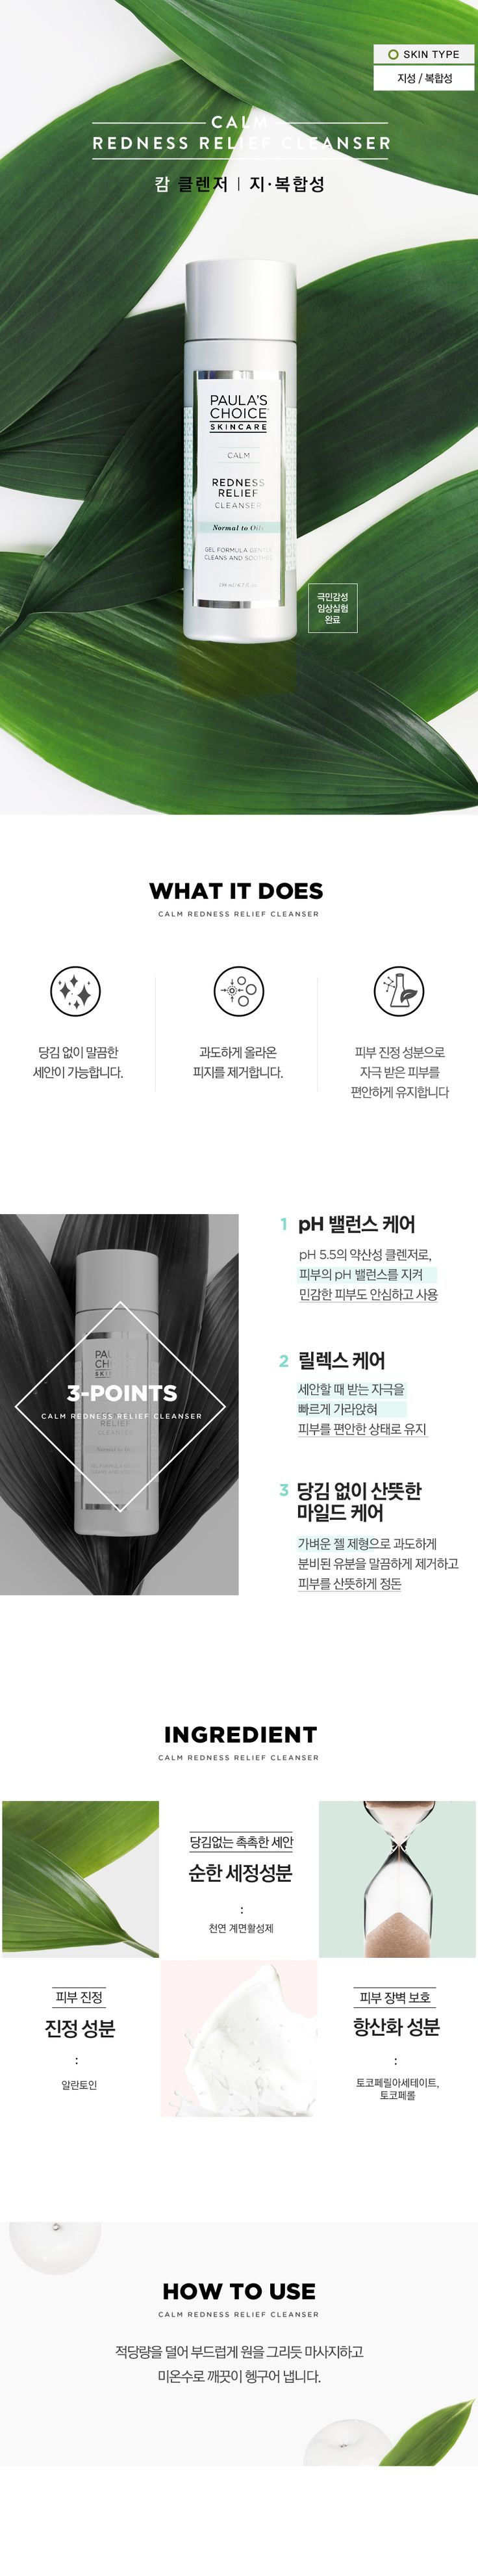 [paula'schoice] cosmetics / webpage / toner / web / promotion / event / webdesign / layout / 상세페이지 / 화장품 / 폴라초이스